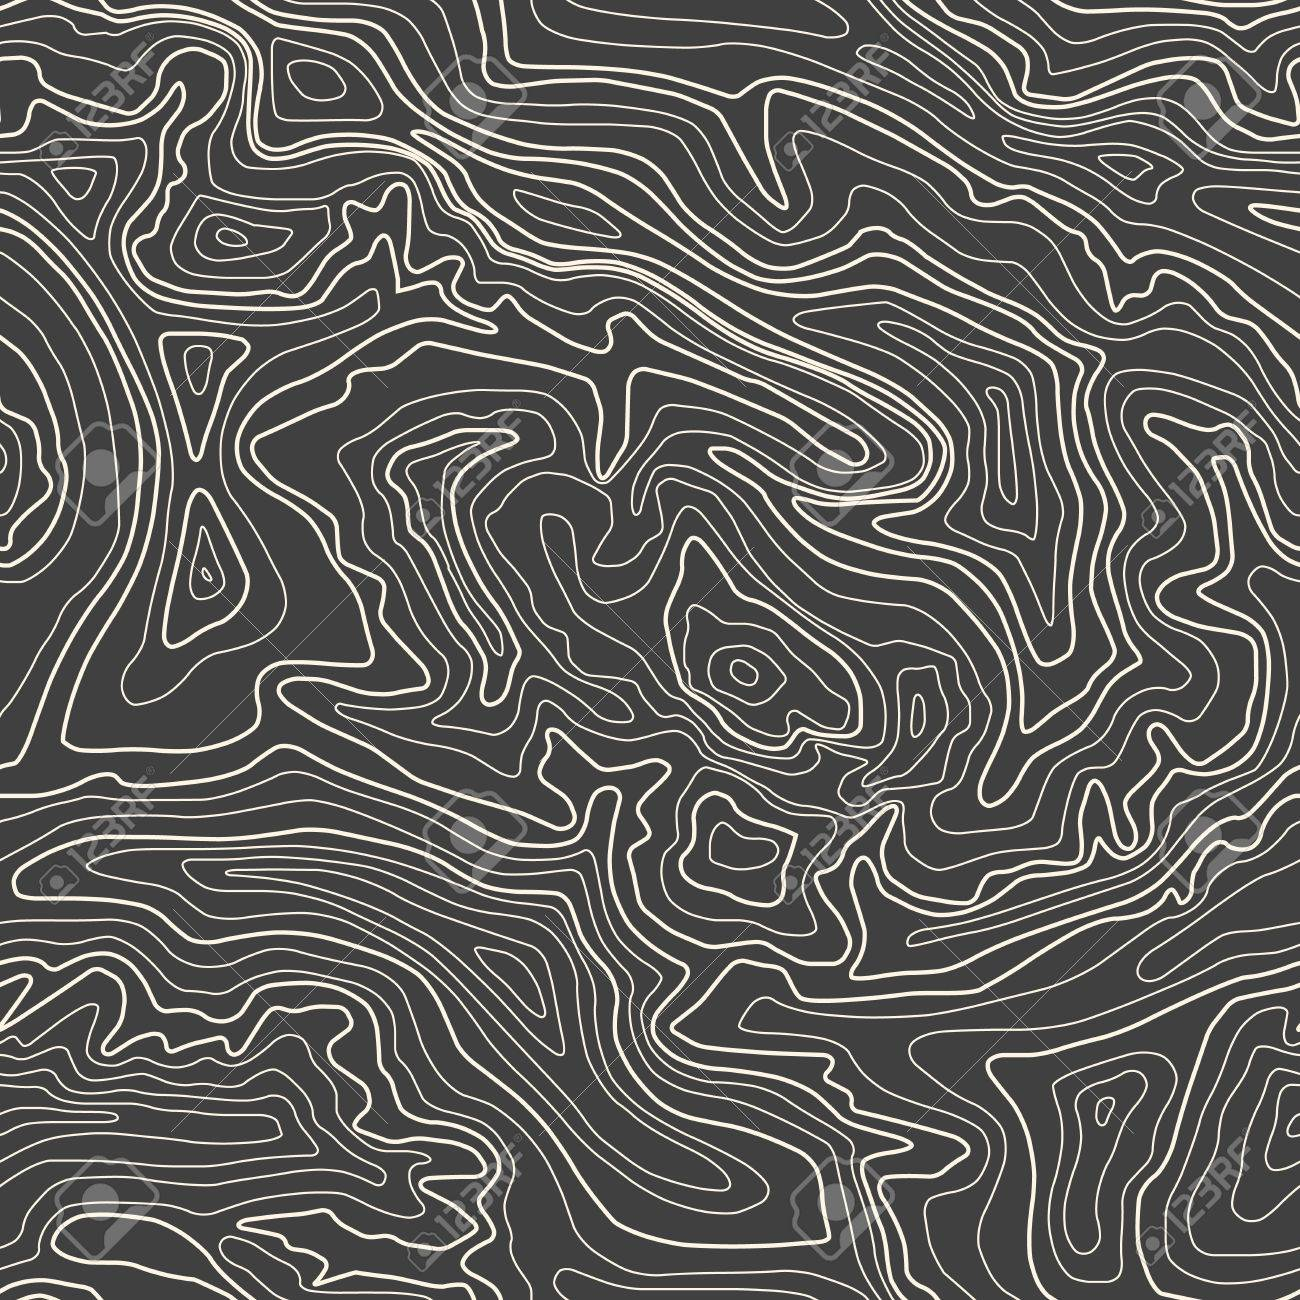 Topographic Map Vector Free.Topographic Map Vector Illustration Seamless Pattern Royalty Free